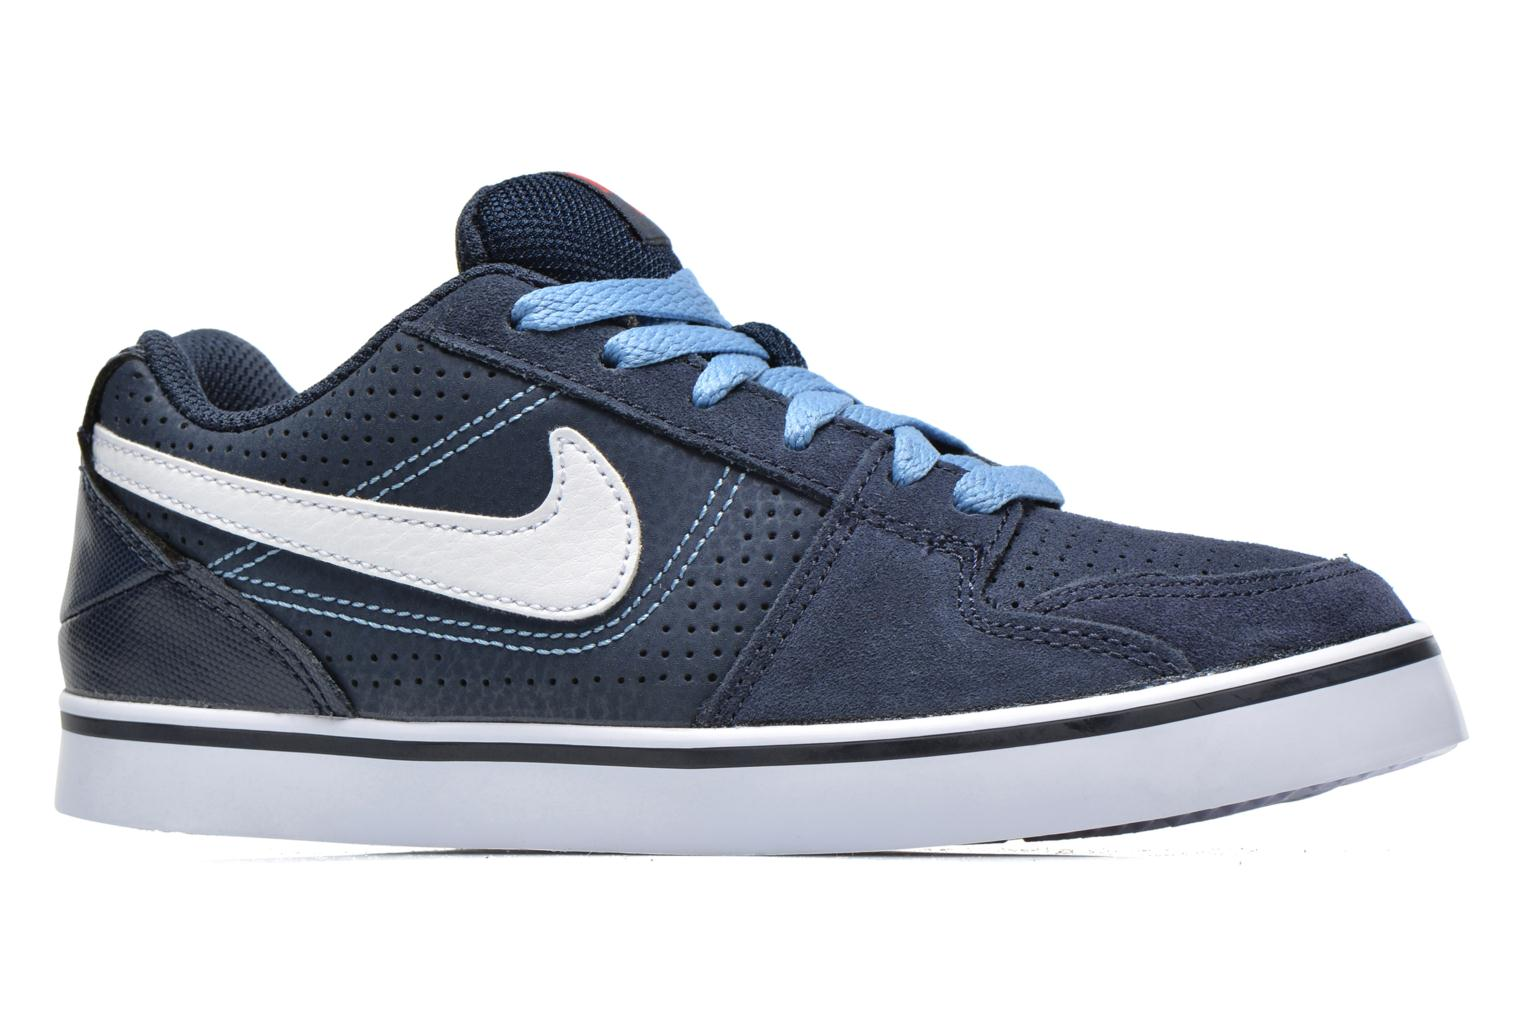 Nike Ruckus Low Jr Obsidian White Light Blue